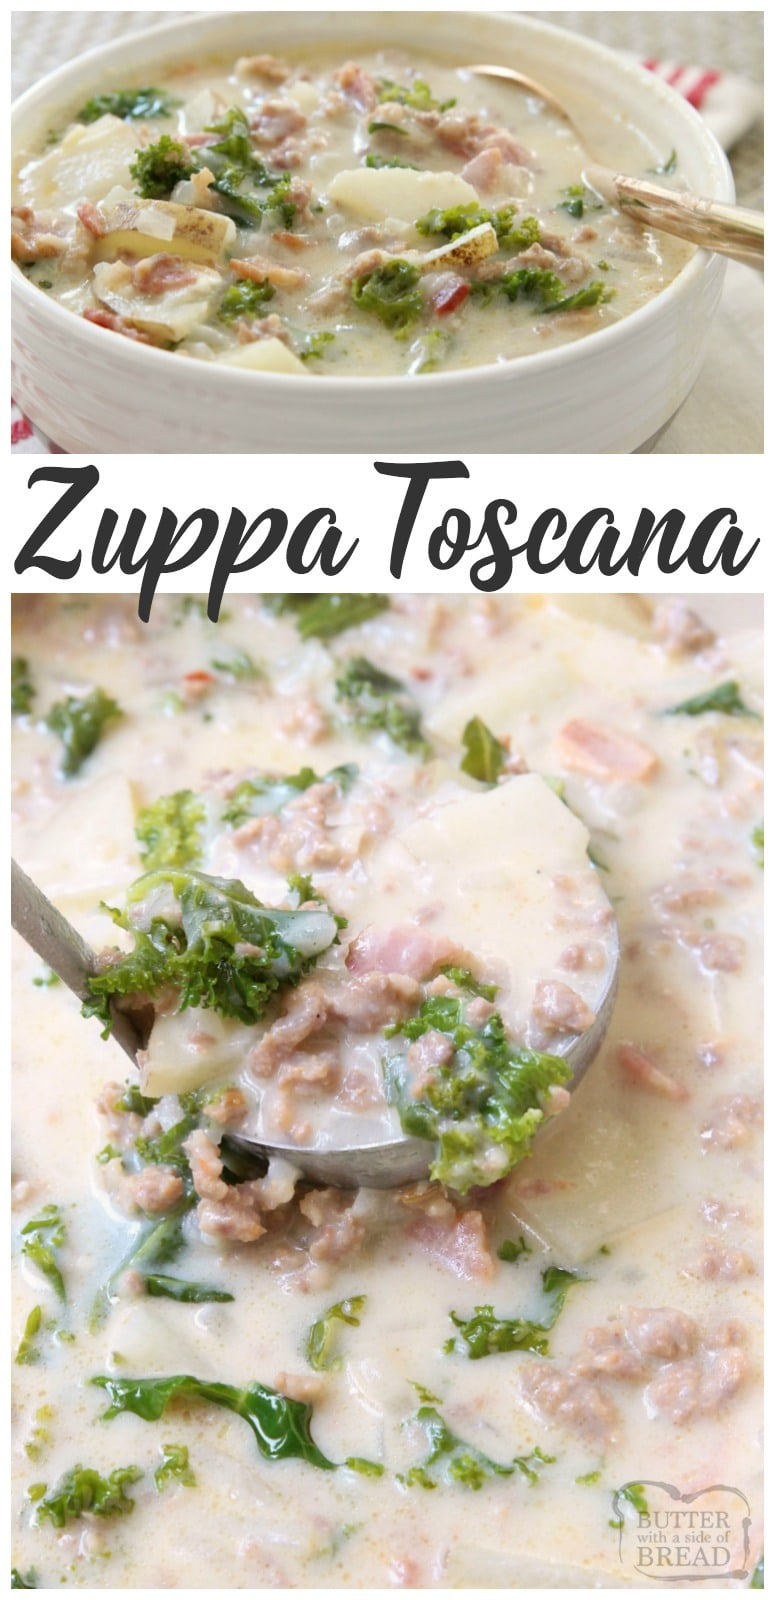 Zuppa Toscana with Italian sausage, potatoes, bacon & kale. Delightfully creamy soup with great flavor & easy to make at home.Time saving tips included!